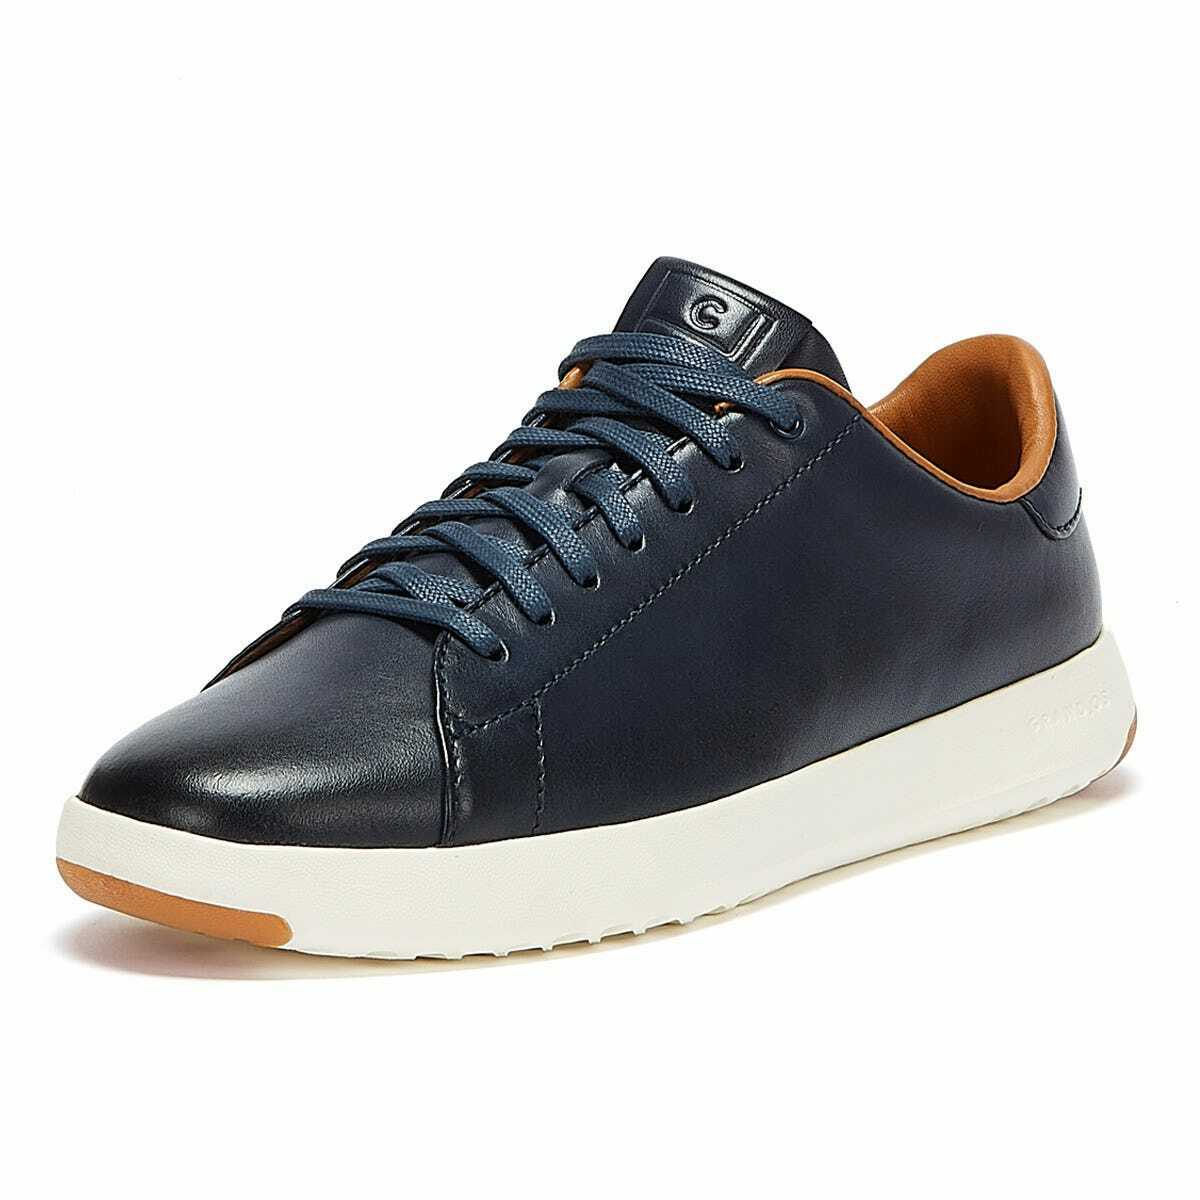 Cole Haan Grandpro Tennis Mens Navy Trainers Sneakers Sports Shoes Comfy Soles